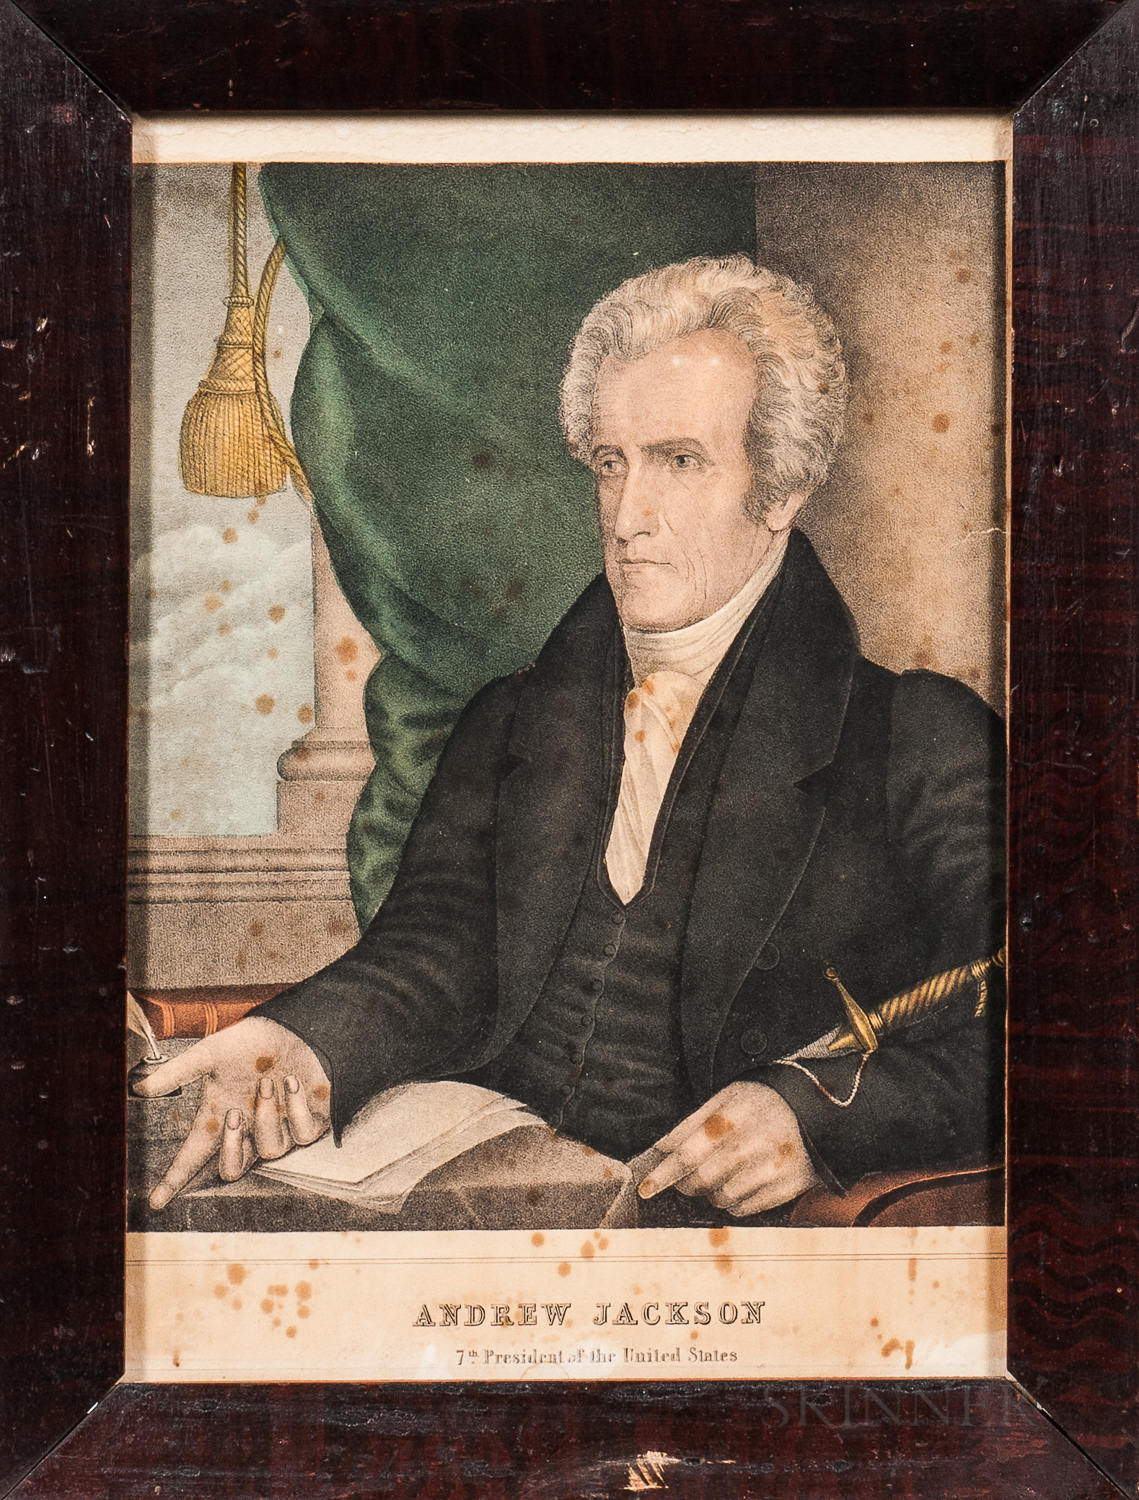 Collection of Small Folio Lithographs of the First Thirteen Presidents